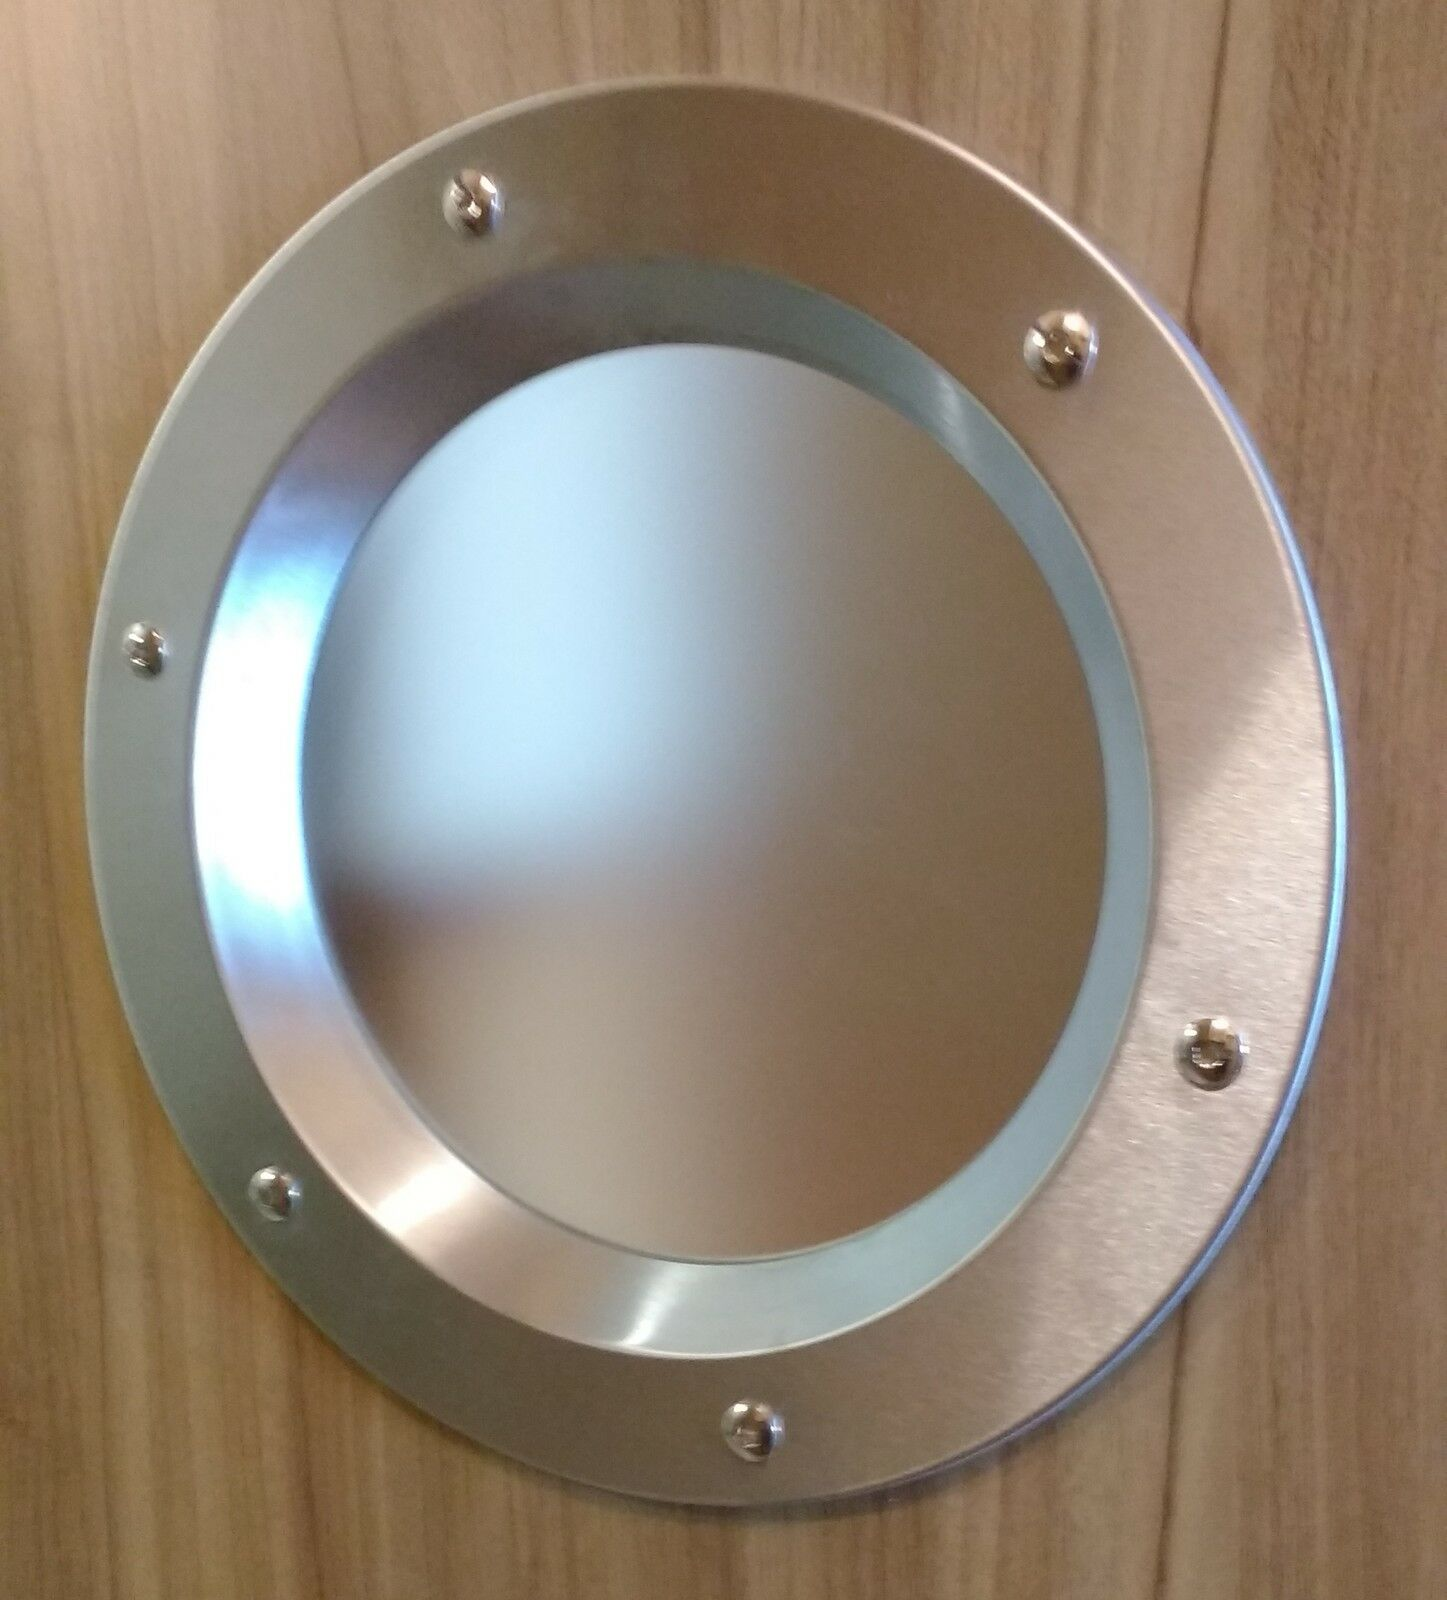 STAINLESS STEEL PORTHOLE VISION PANELS FOR DOORS phi 350 mm. New. Beautiful.